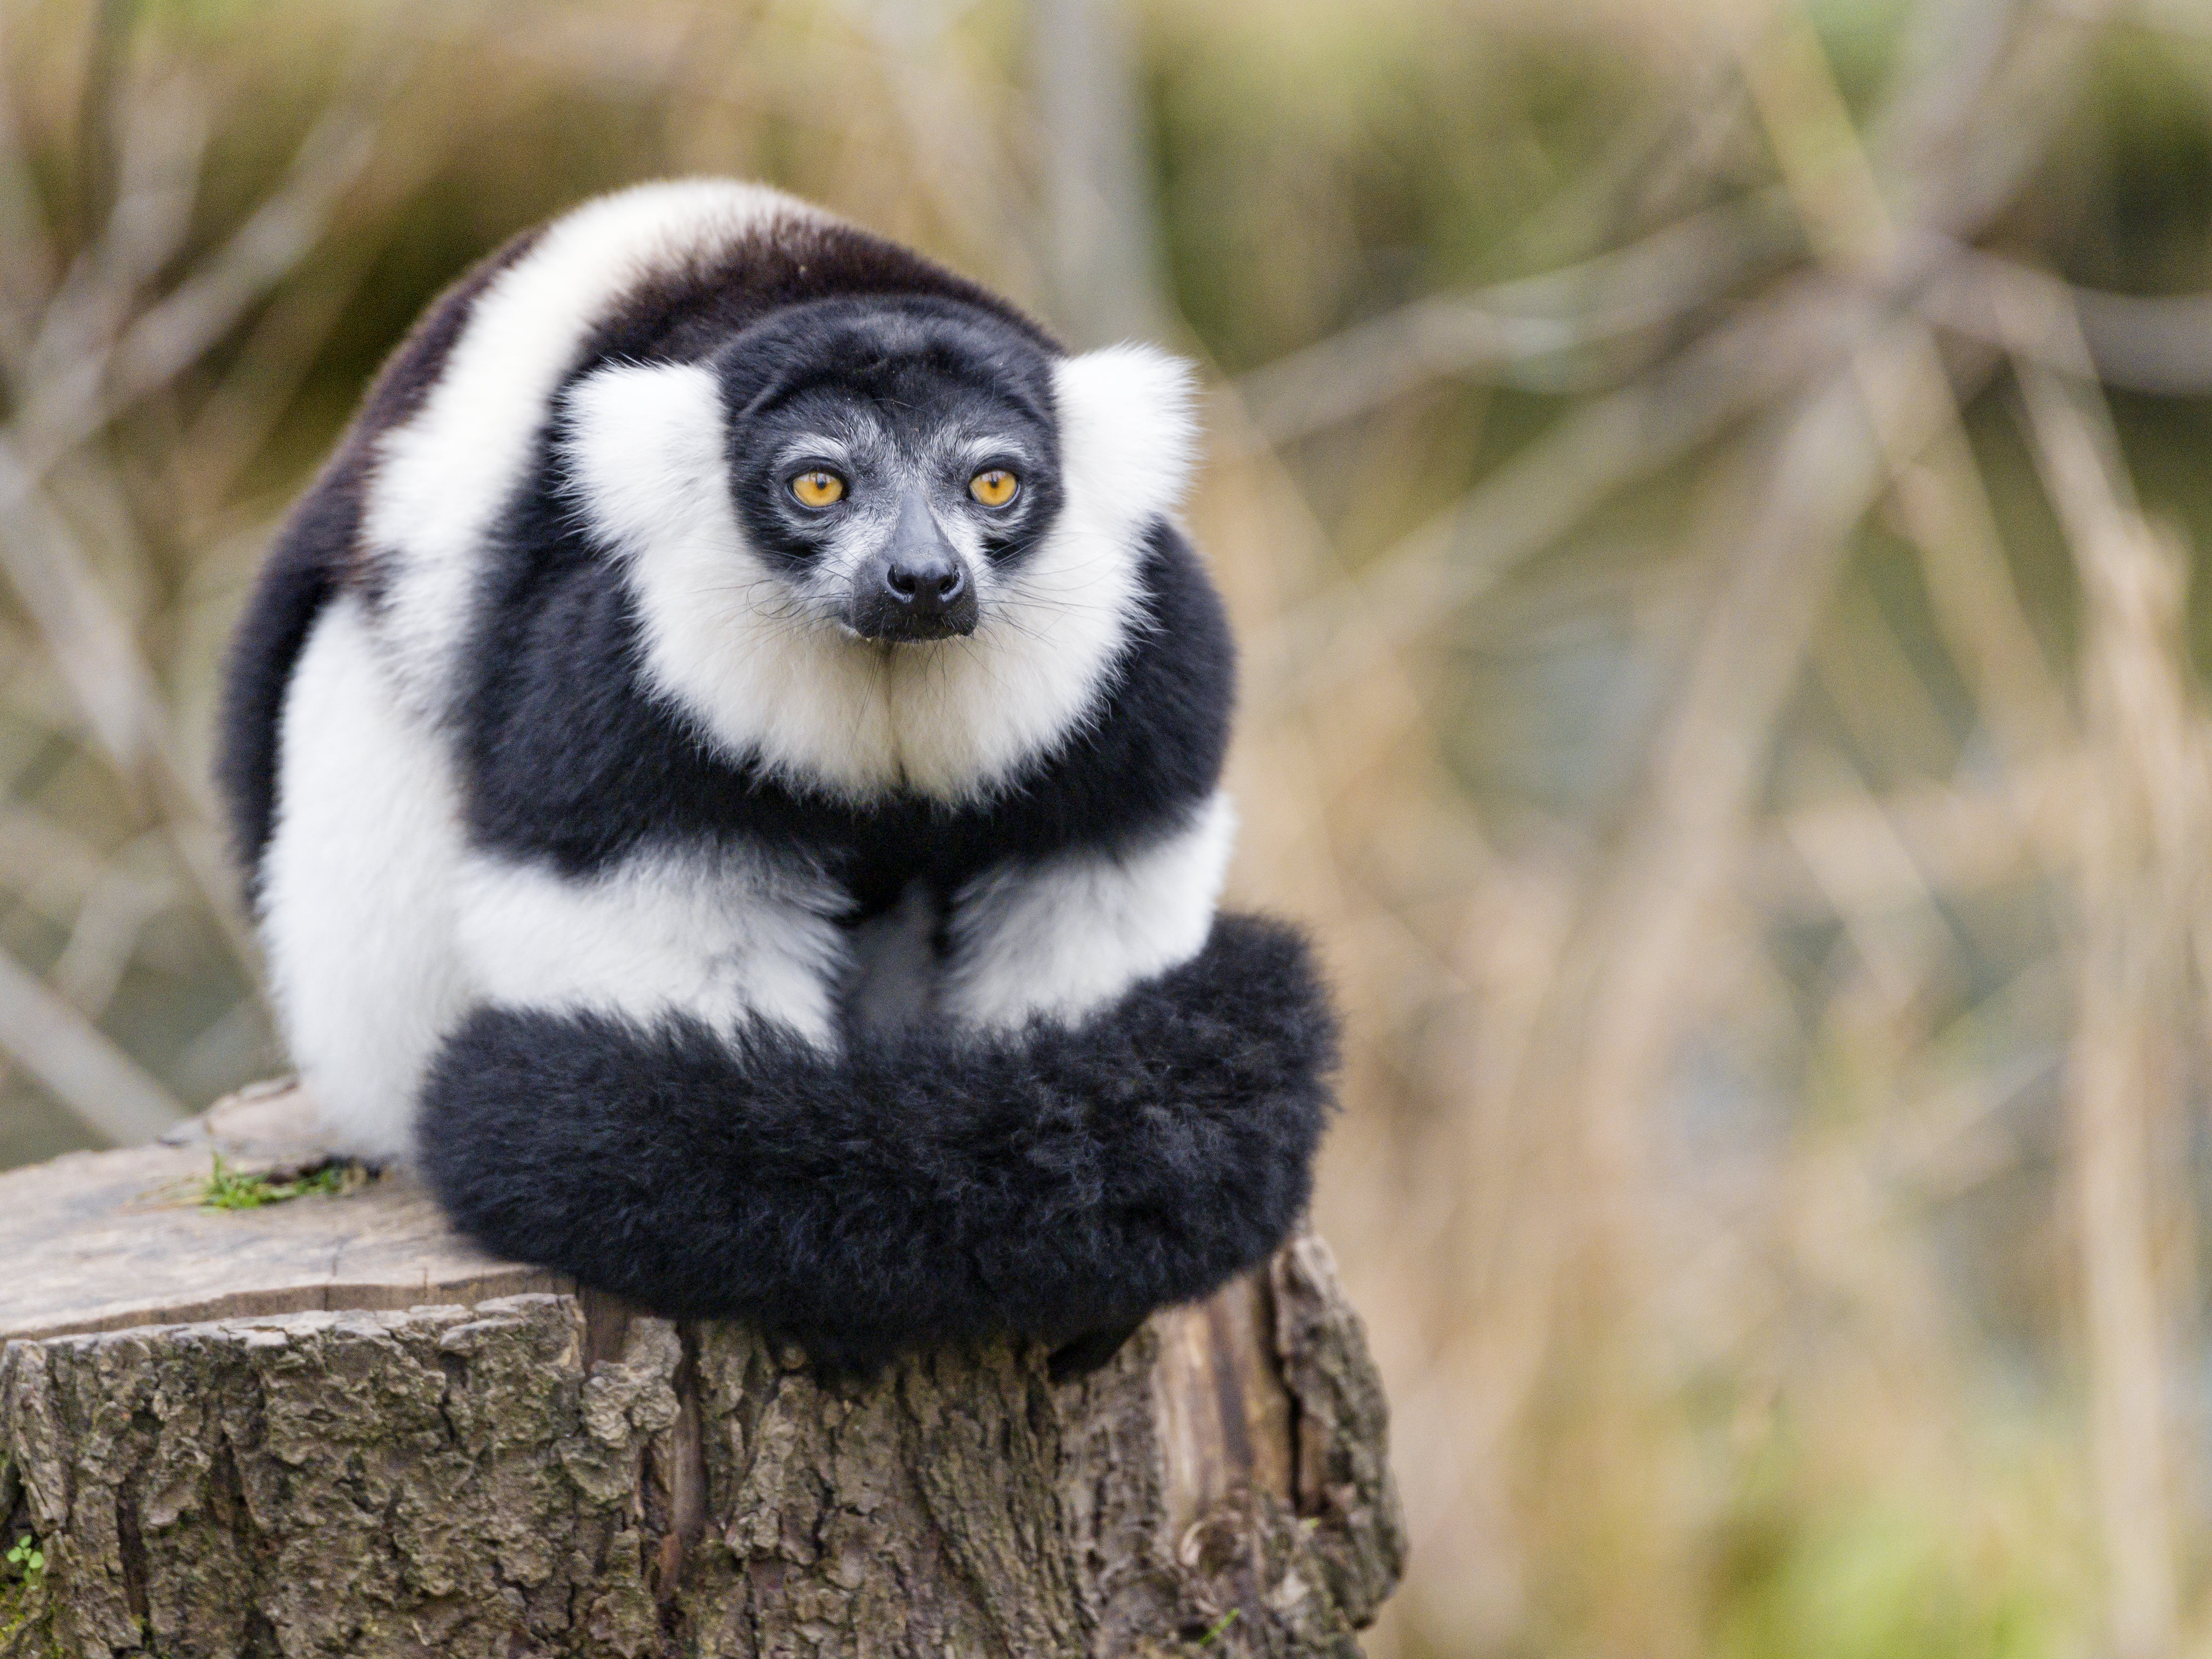 62968 download wallpaper Animals, Lemur, Animal, Fluffy, Striped screensavers and pictures for free